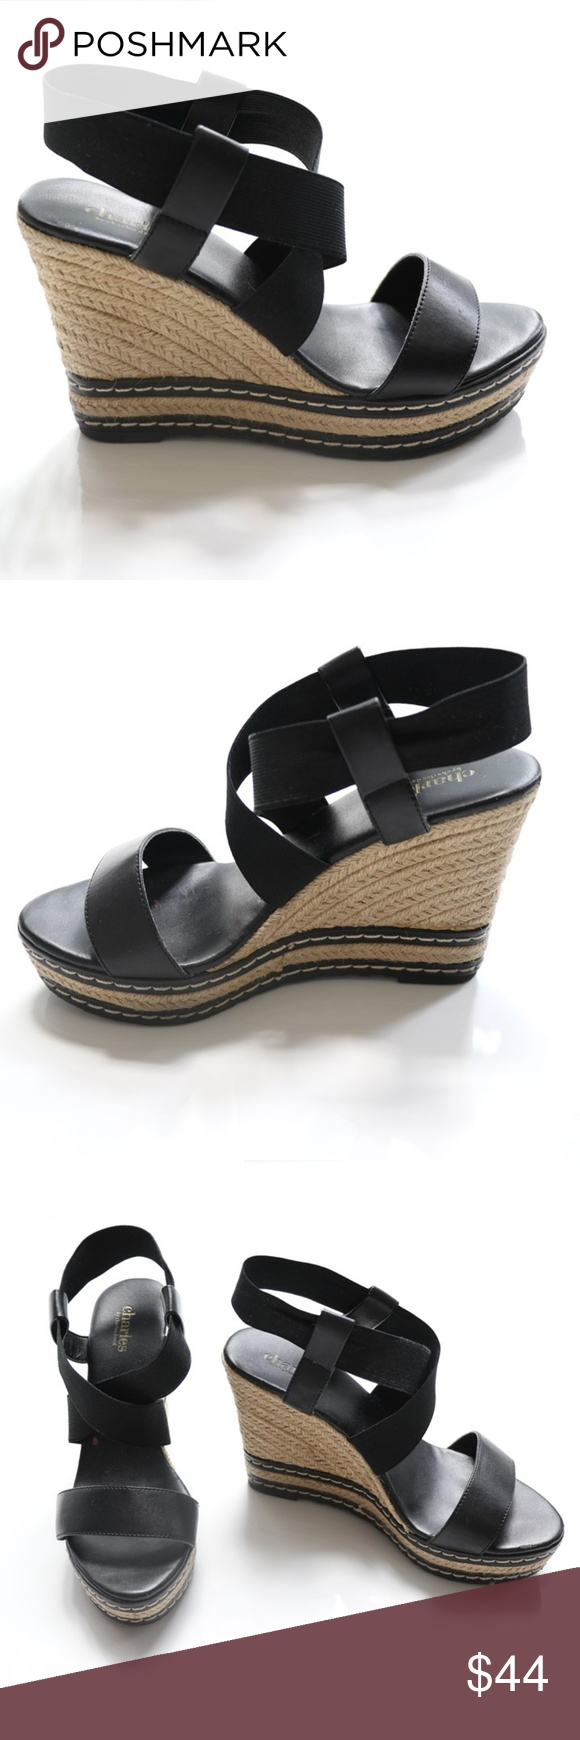 8396ec9fa6f3 Charles by Charles David Black Espadrille Wedges The sandals features  elastic stretch vamp and ankle straps for a comfortable fit.